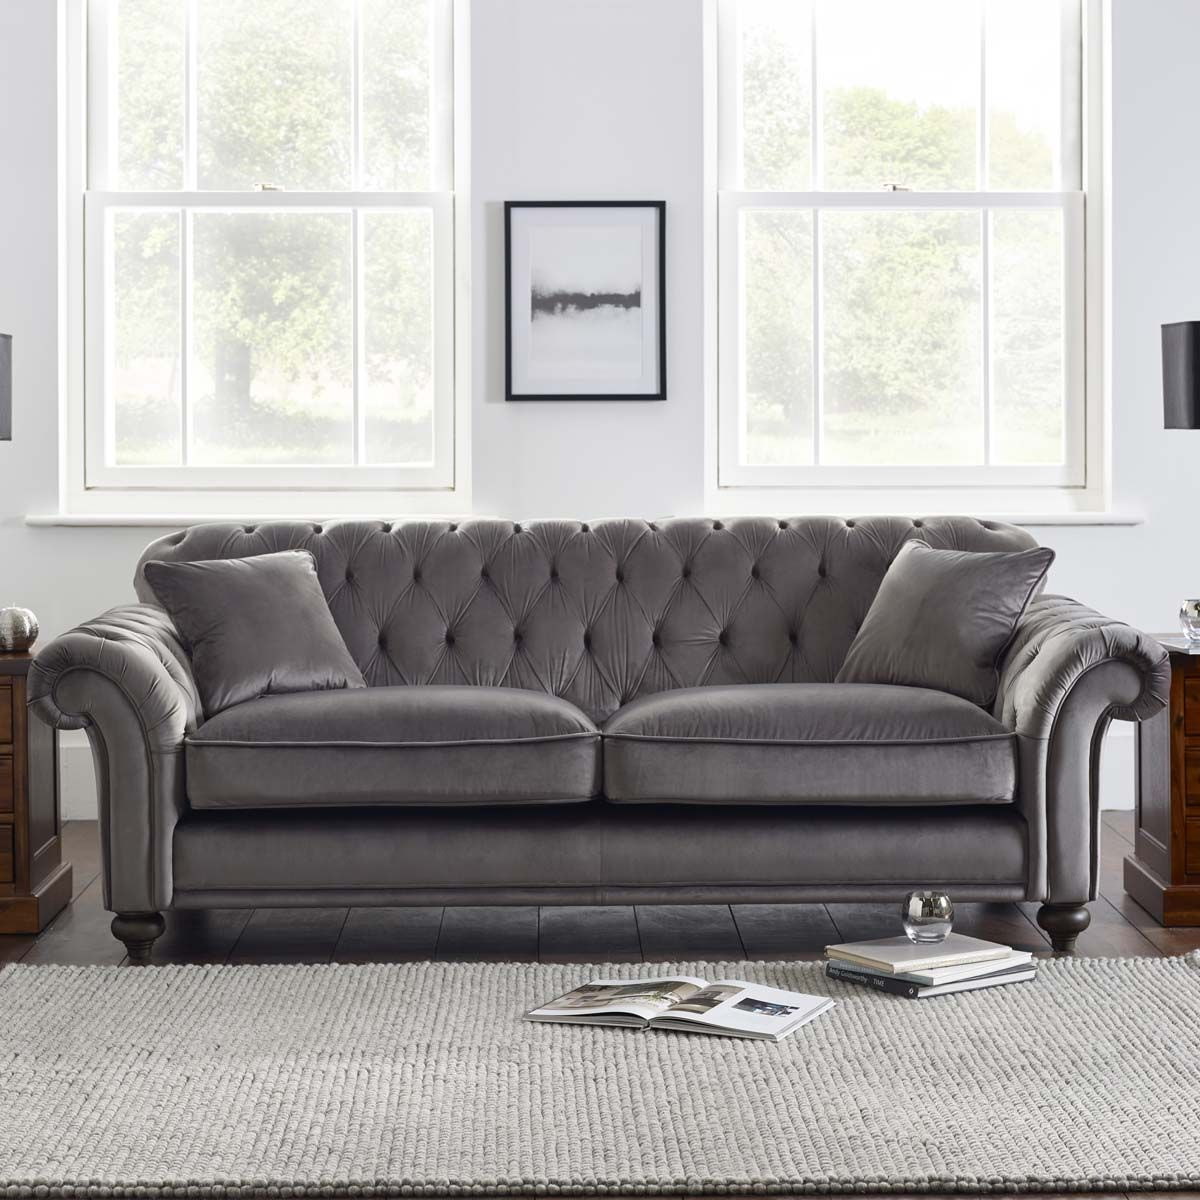 sofa at costco uk genuine leather sectional toronto bordeaux button back 4 seater grey velvet with 2 accent pillows